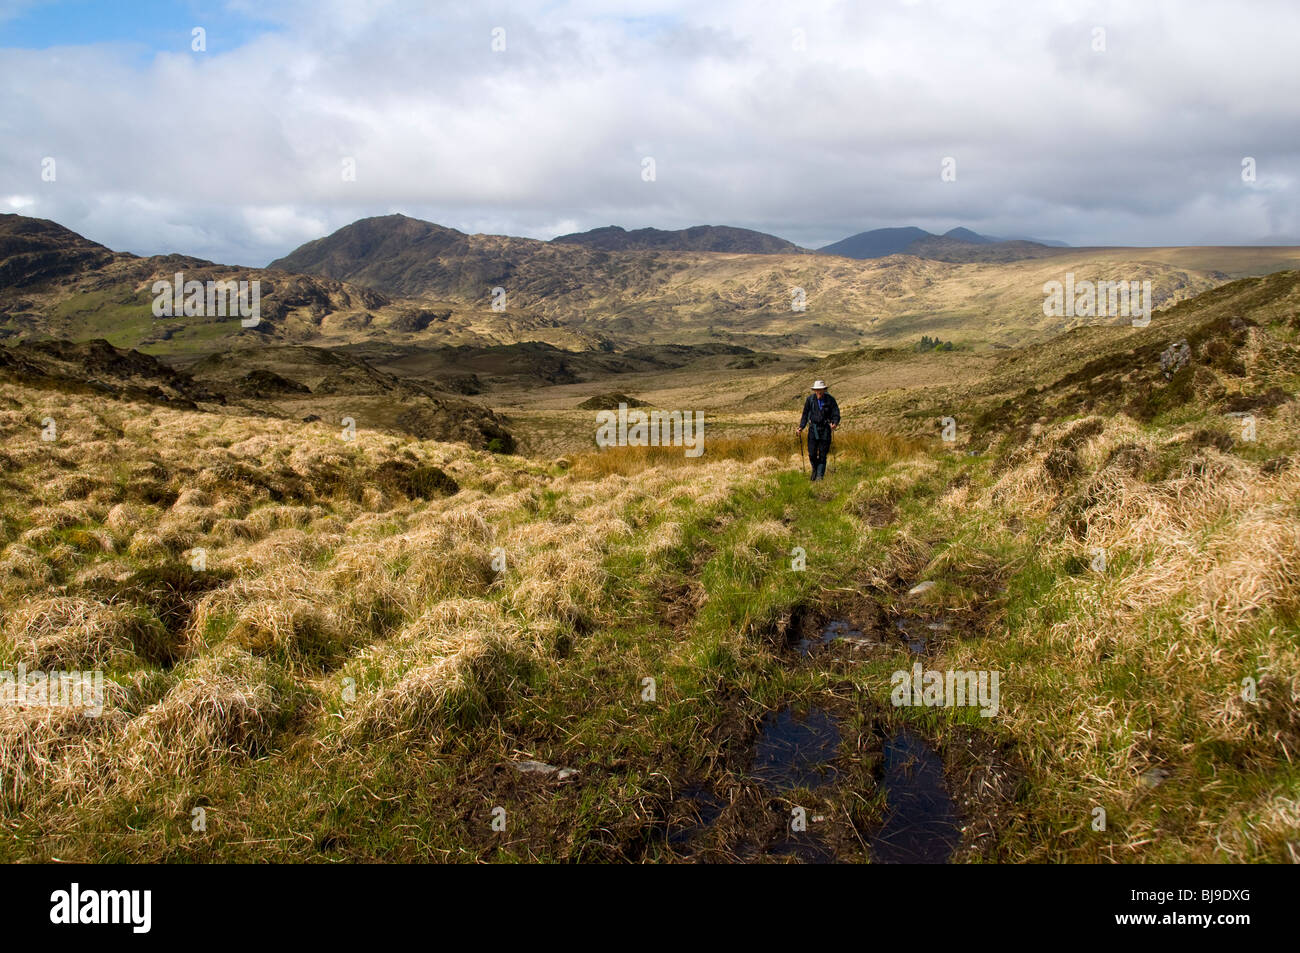 A walker on old track in the Kenmare Uplands, County Kerry, Ireland Stock Photo